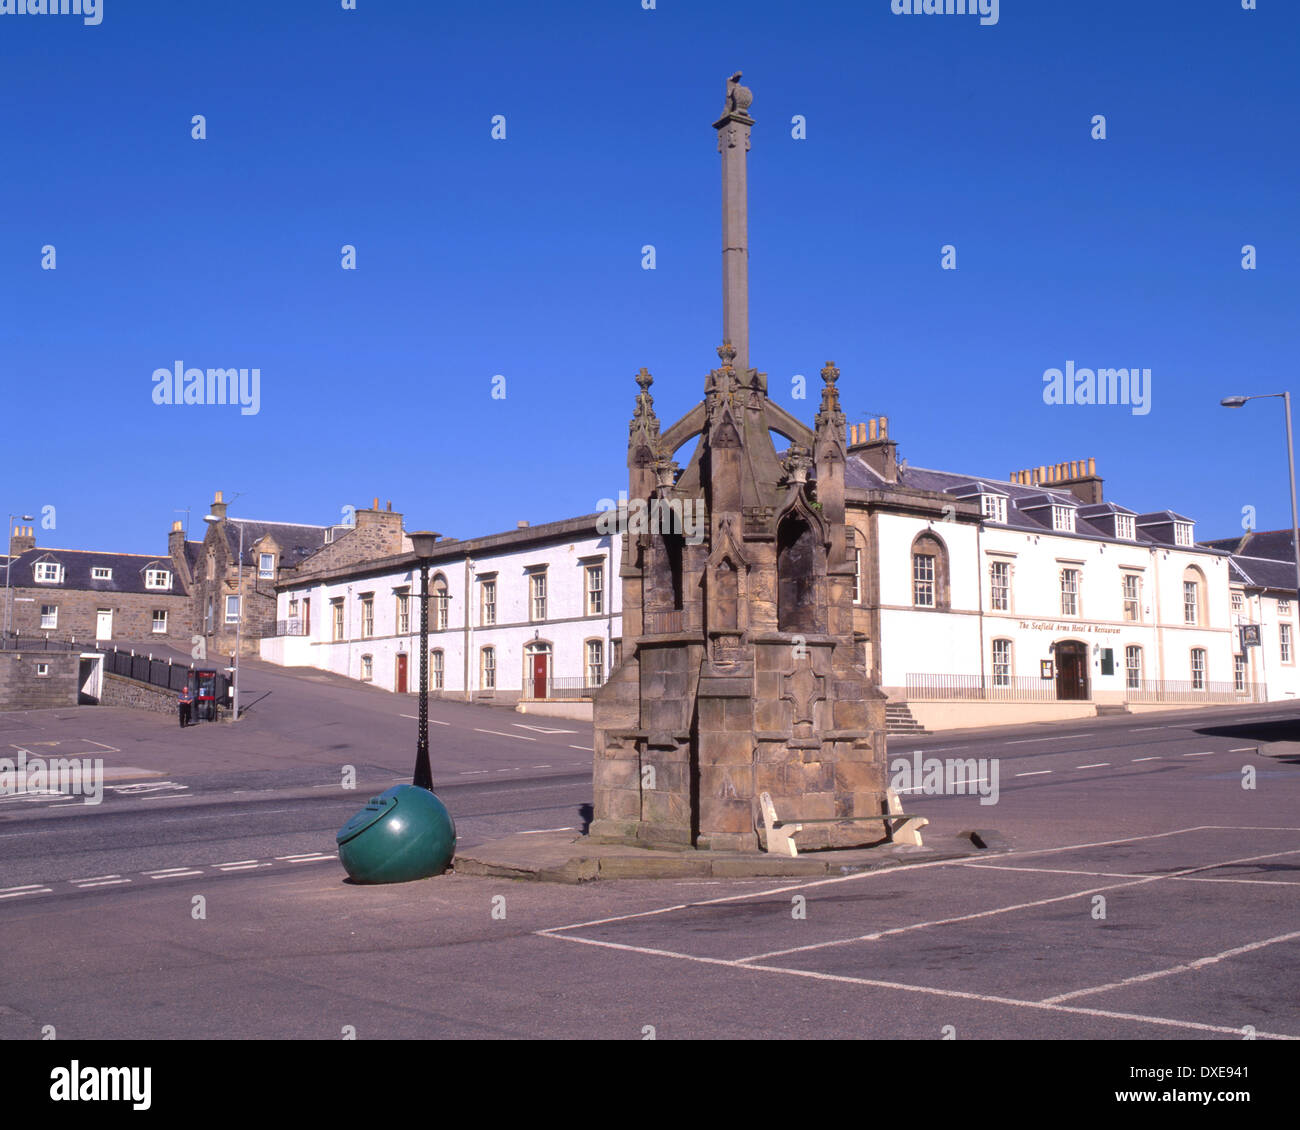 1695 Mercat cross in Cullen Town, Moray Firth - Stock Image